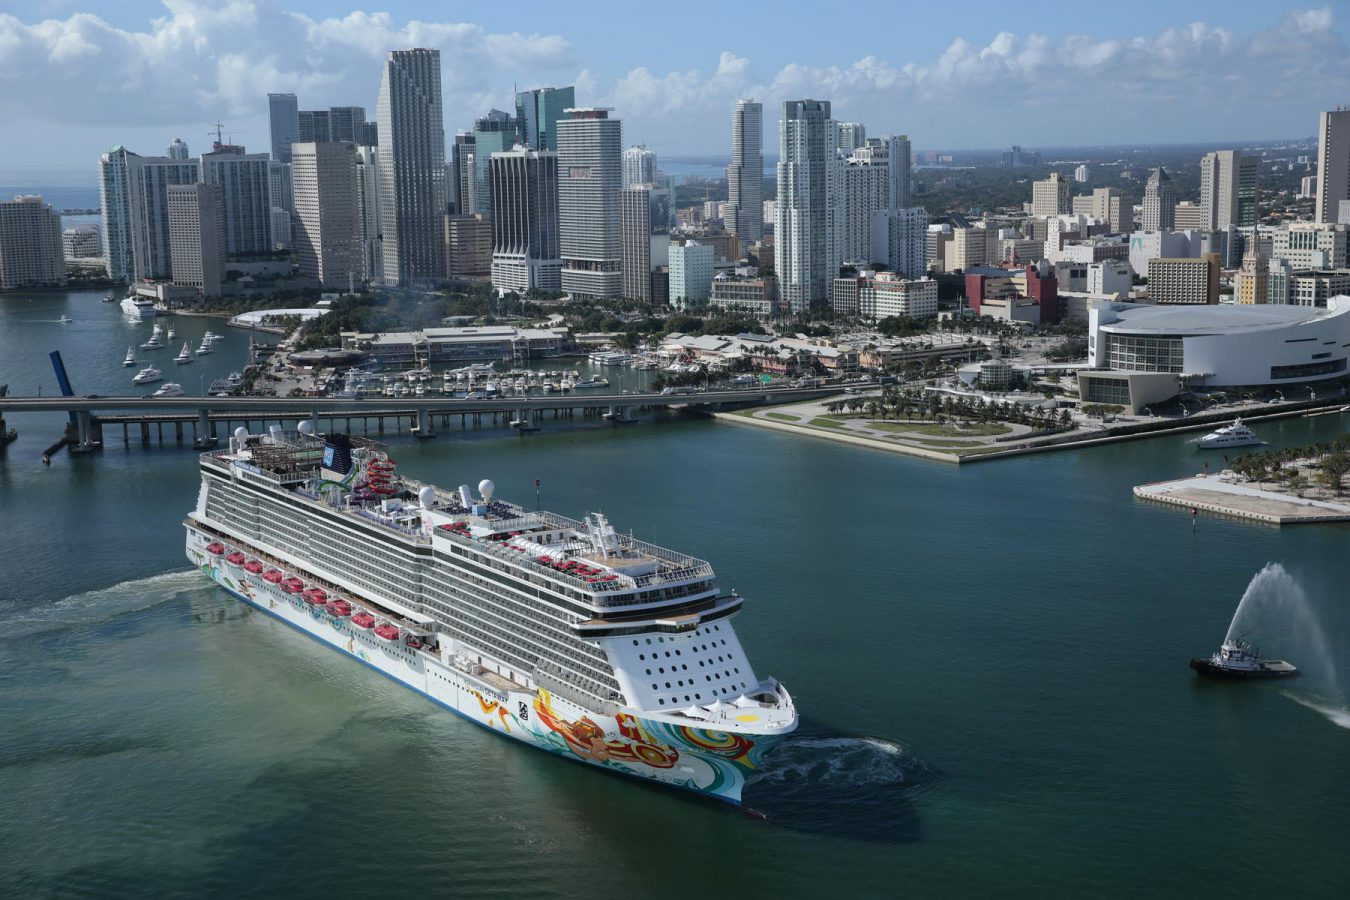 Norwegian 39 s new getaway has arrived in miami and will for Weekend getaways from miami